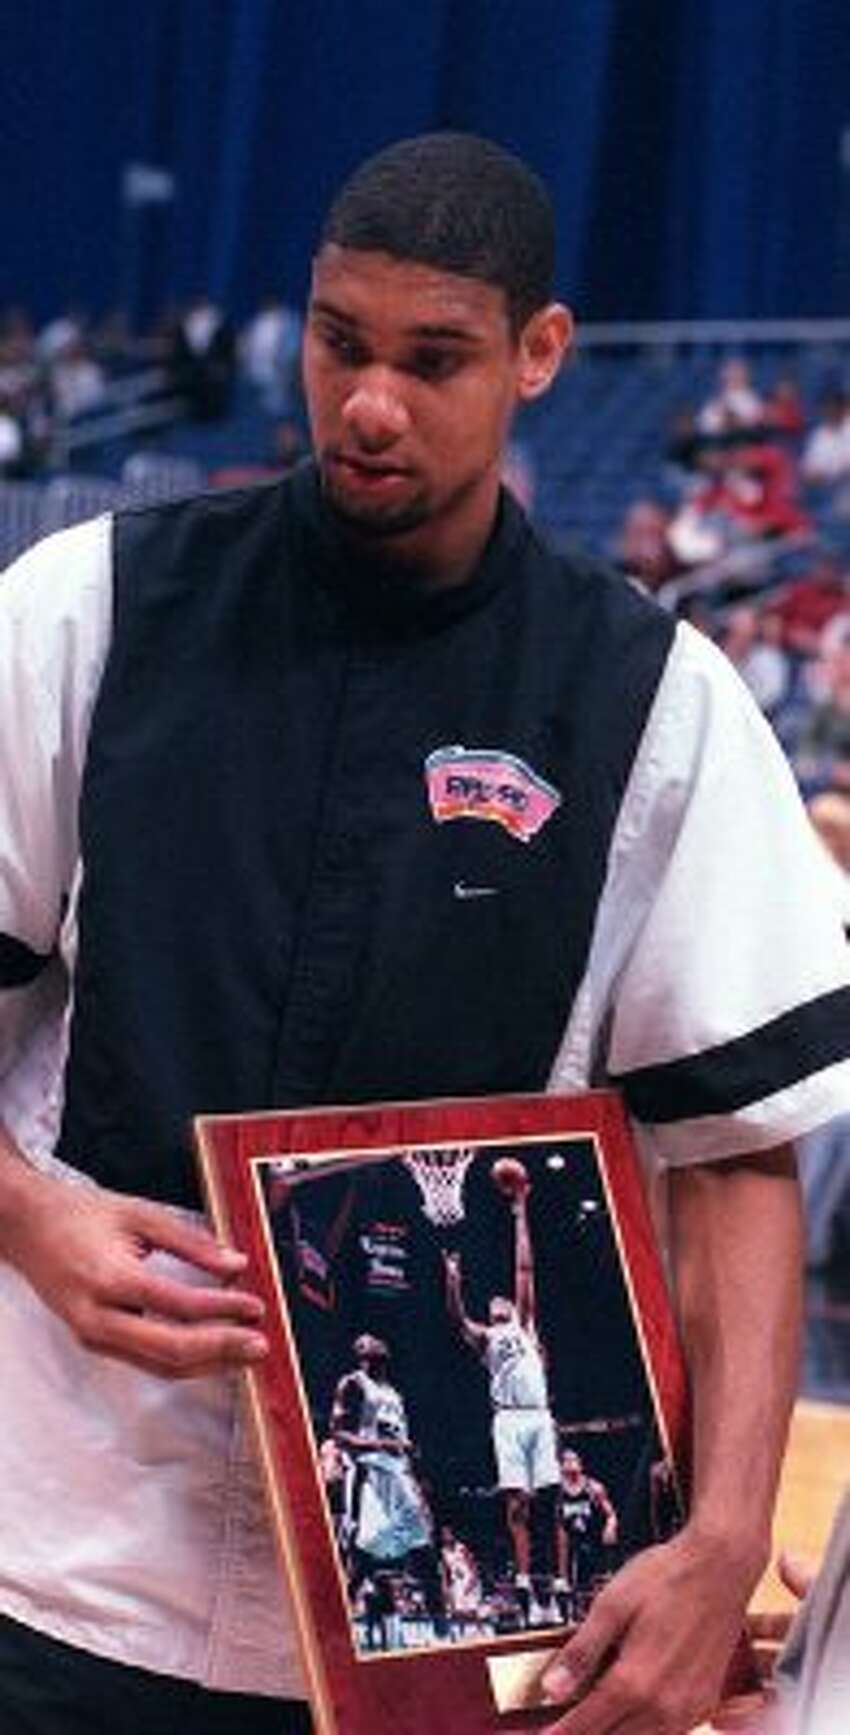 Feb. 24, 1998: NBA Rookie of the Month Spurs forward Tim Duncan receives his award before the game against the Minnesota Timberwolves. (AP Photo/Charles Barksdale) (AP)